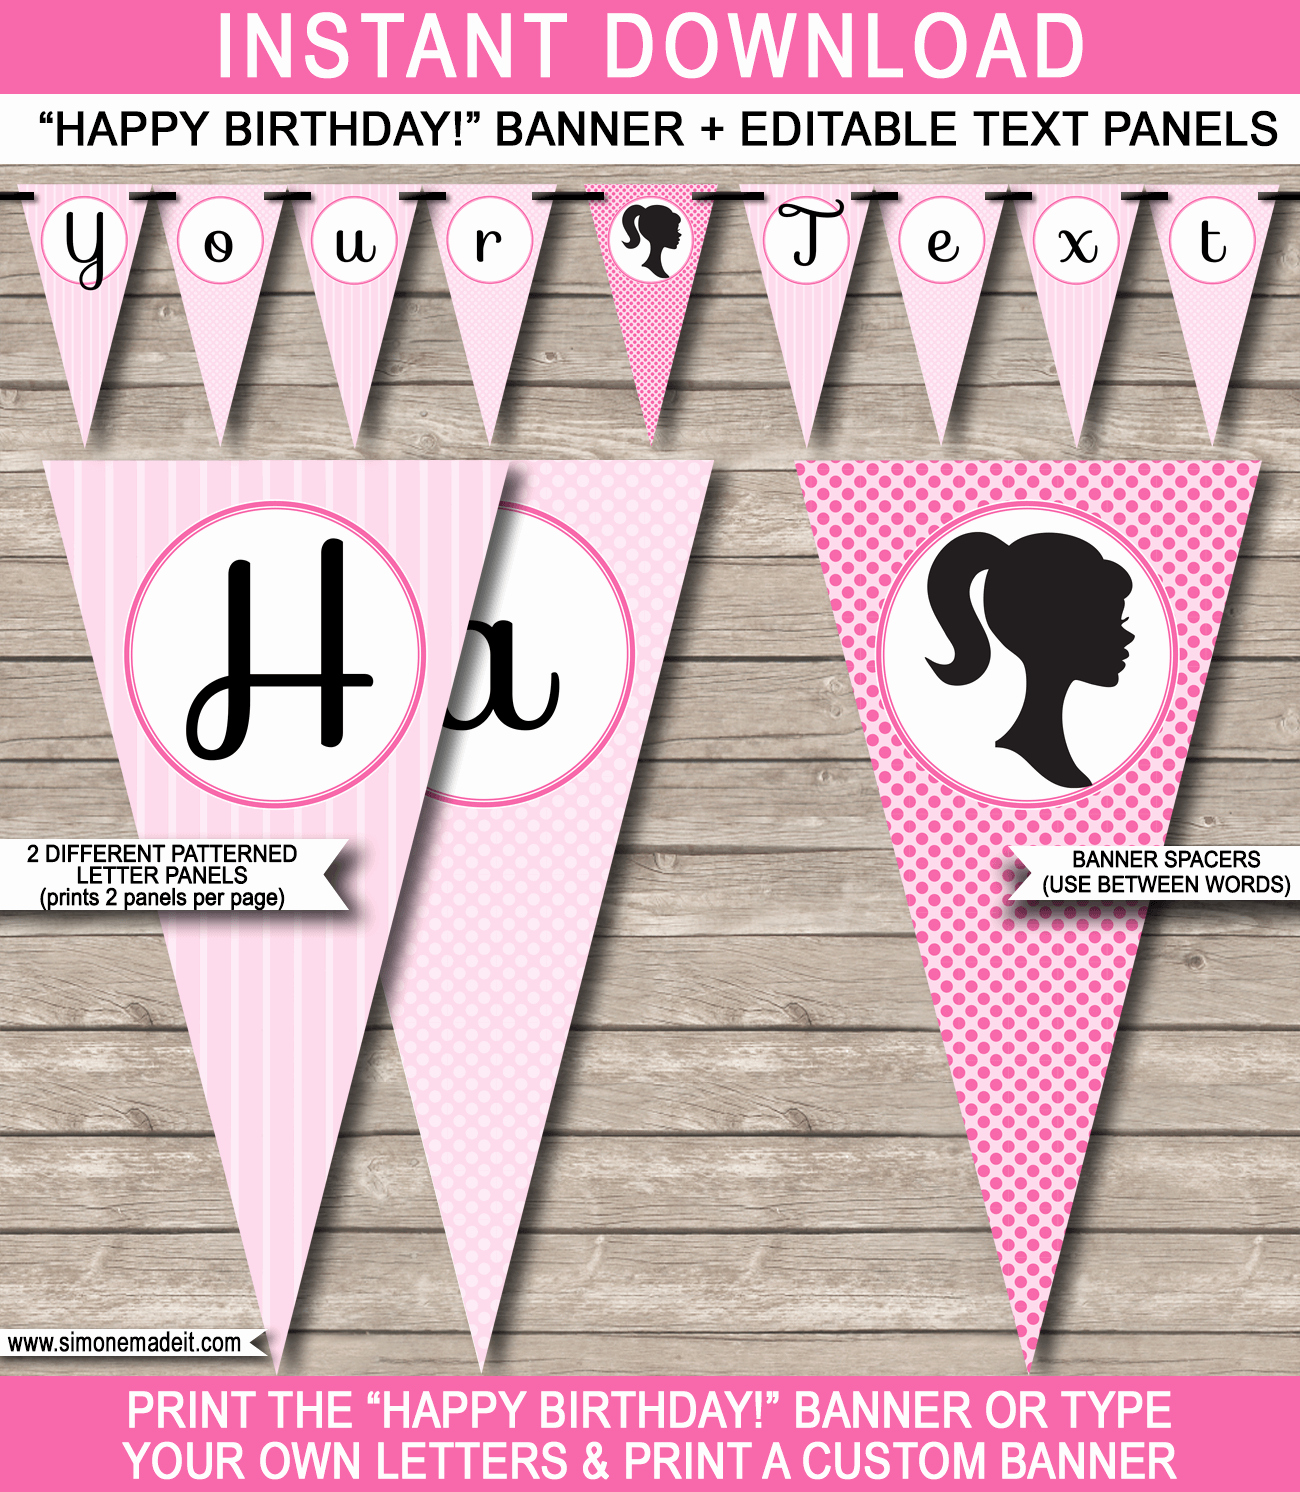 Happy Birthday Banner Print Out Luxury Barbie Party Banner Template Birthday Banner